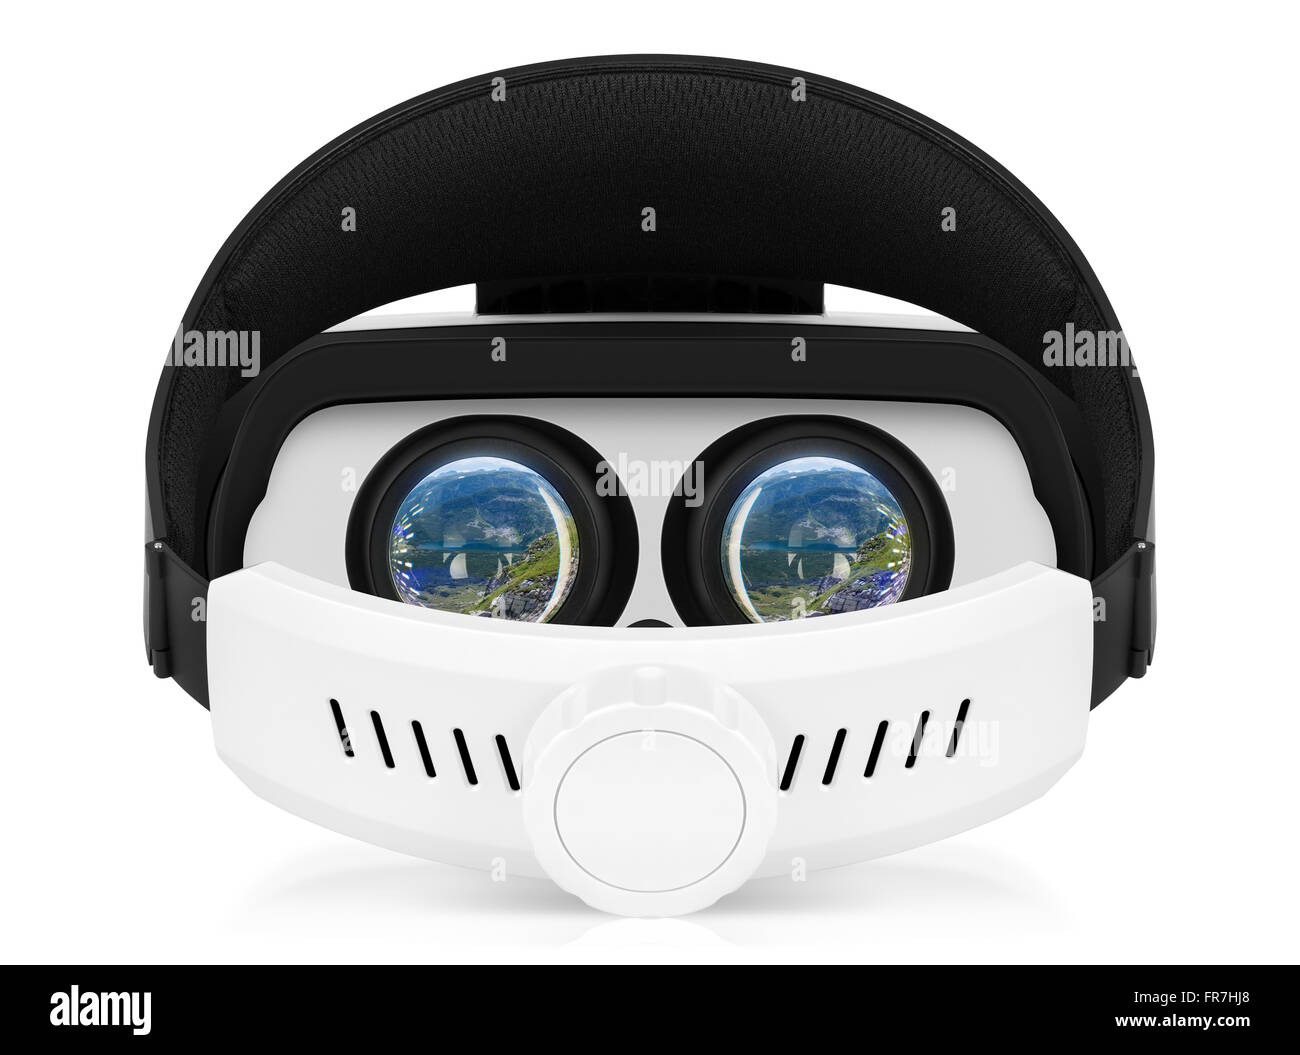 Back view of VR virtual reality headset with turns on displays. VR is an immersive experience. - Stock Image